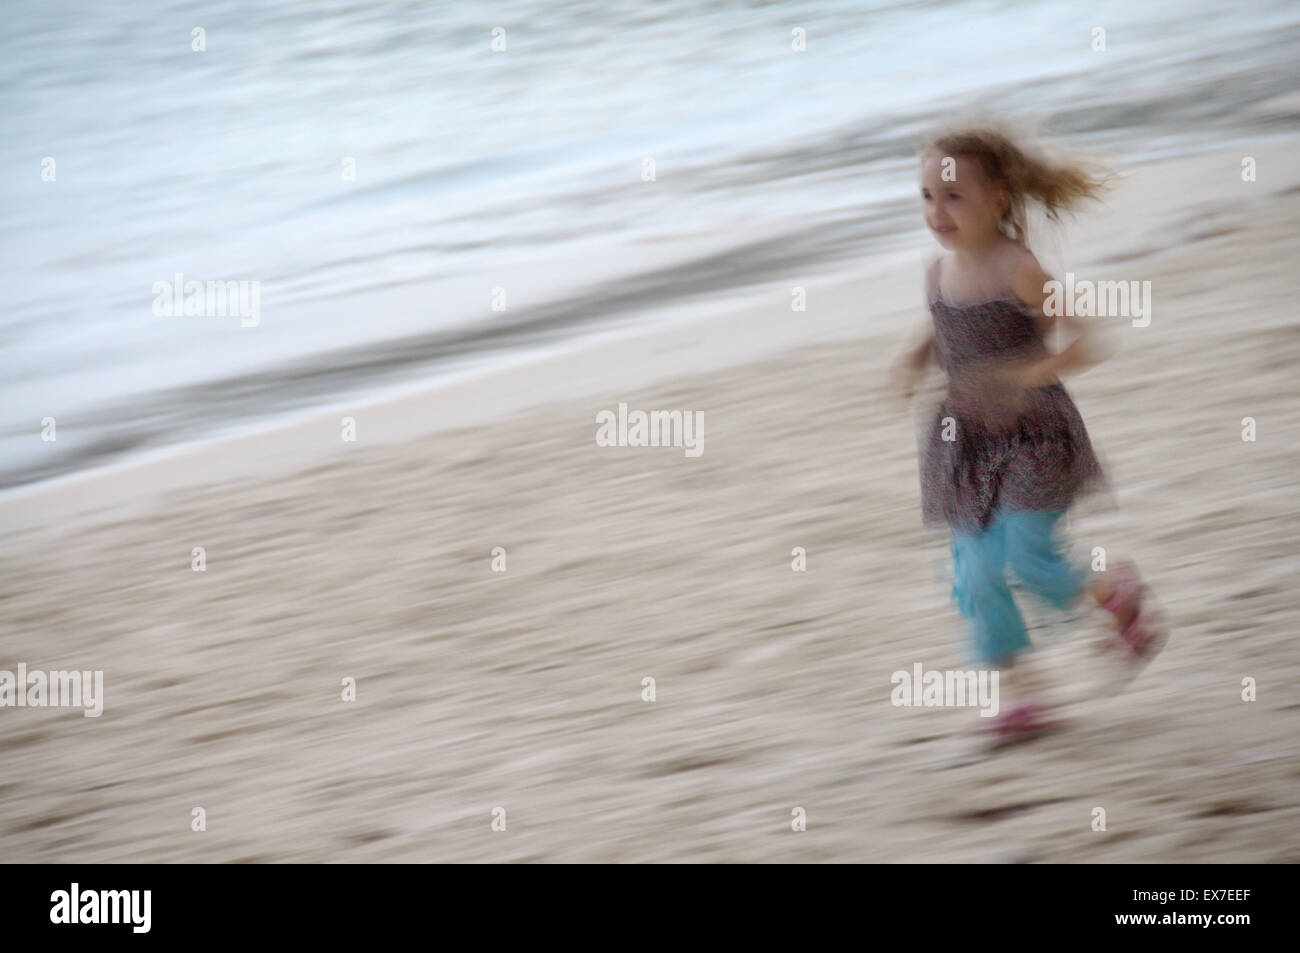 Little girl in a sundress running along the sandy shores of the Indian Ocean, Mahe island, Seychelles - Stock Image